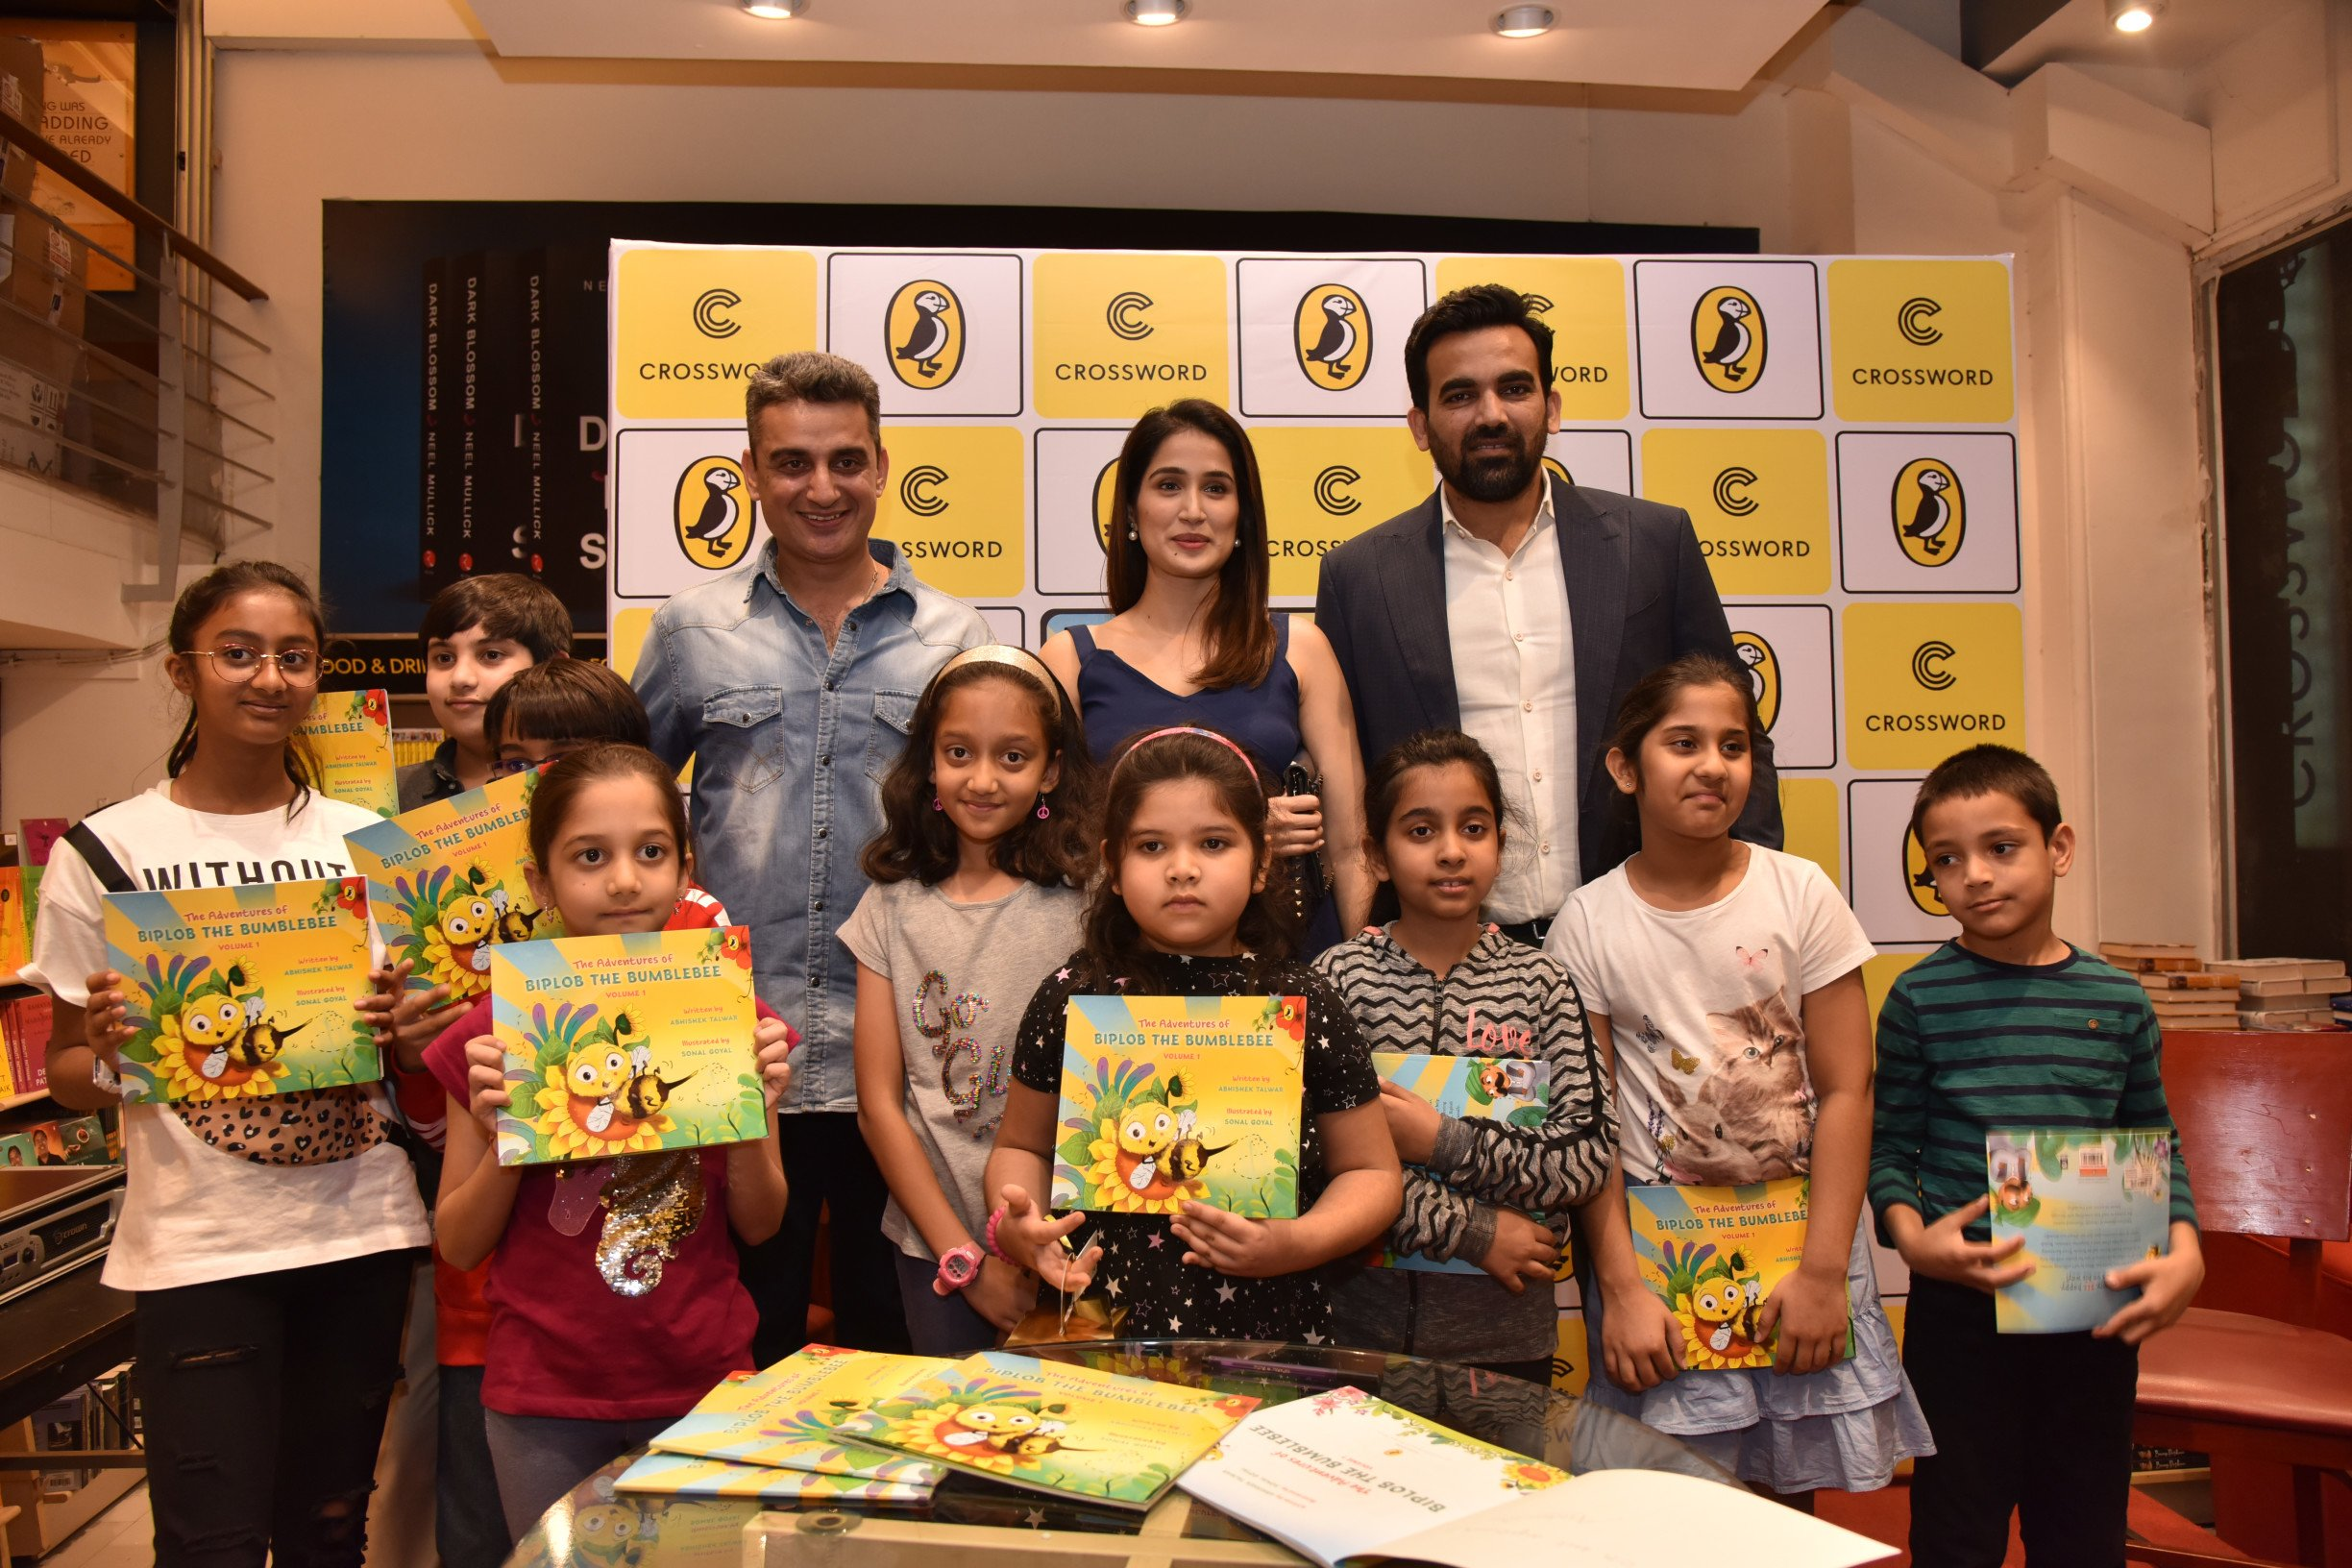 Abhishek Talwar's 'The Adventures of Biplob the Bumblebee' launched at Crossword Bookstore